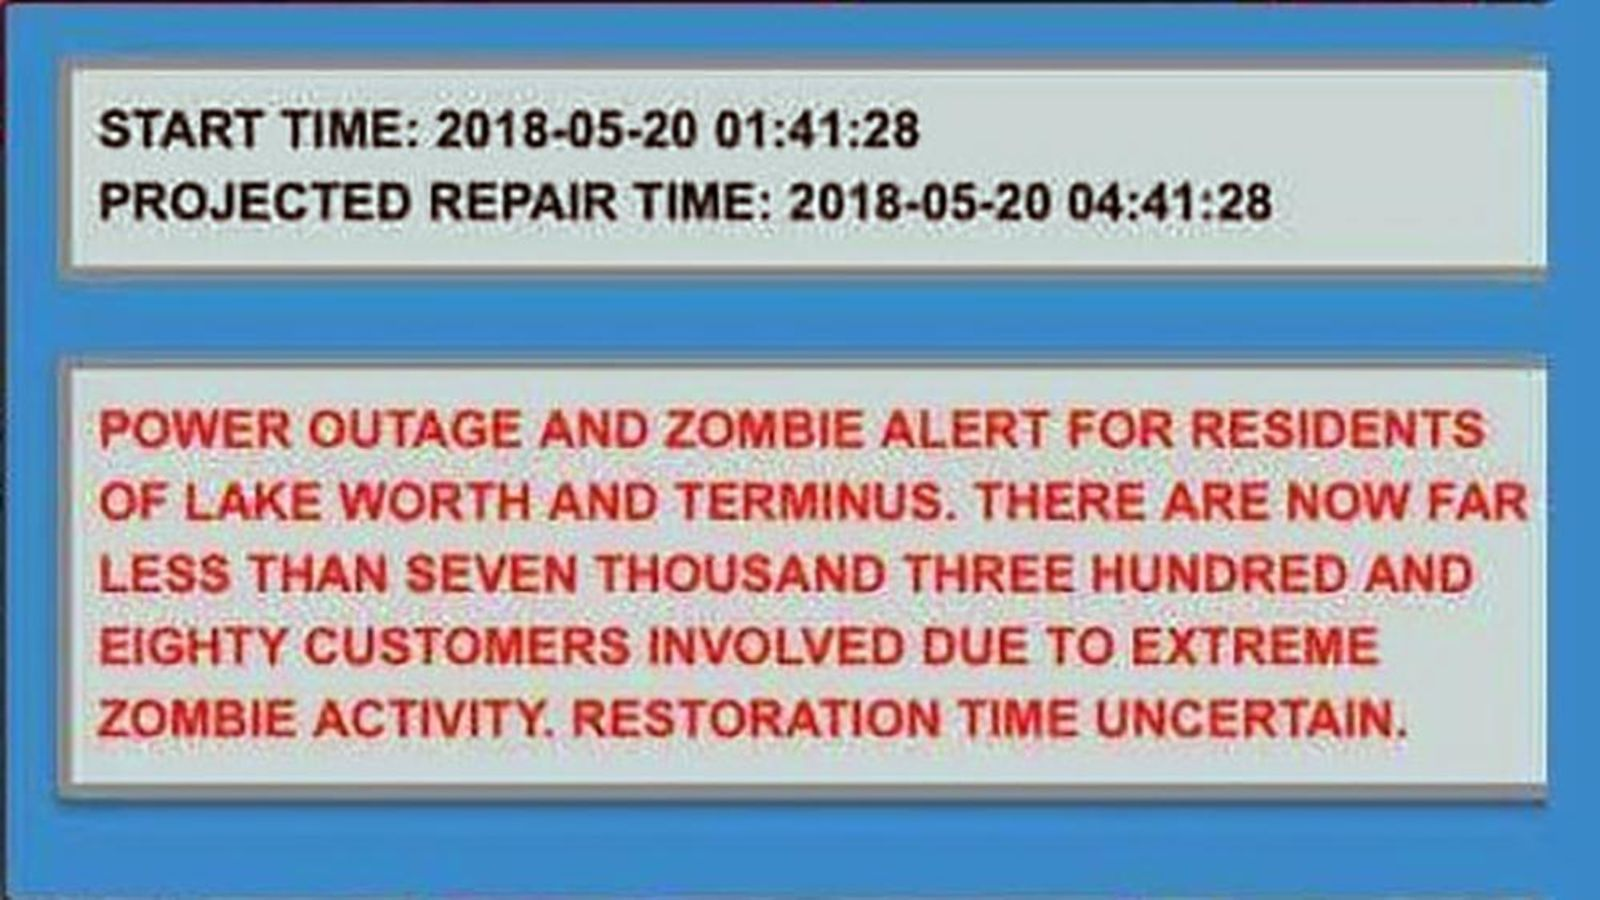 Florida City Has Been Accidentally Sending Out Zombie Alert Messages Since Hurricane Irma Lake Worth Florida City Zombie